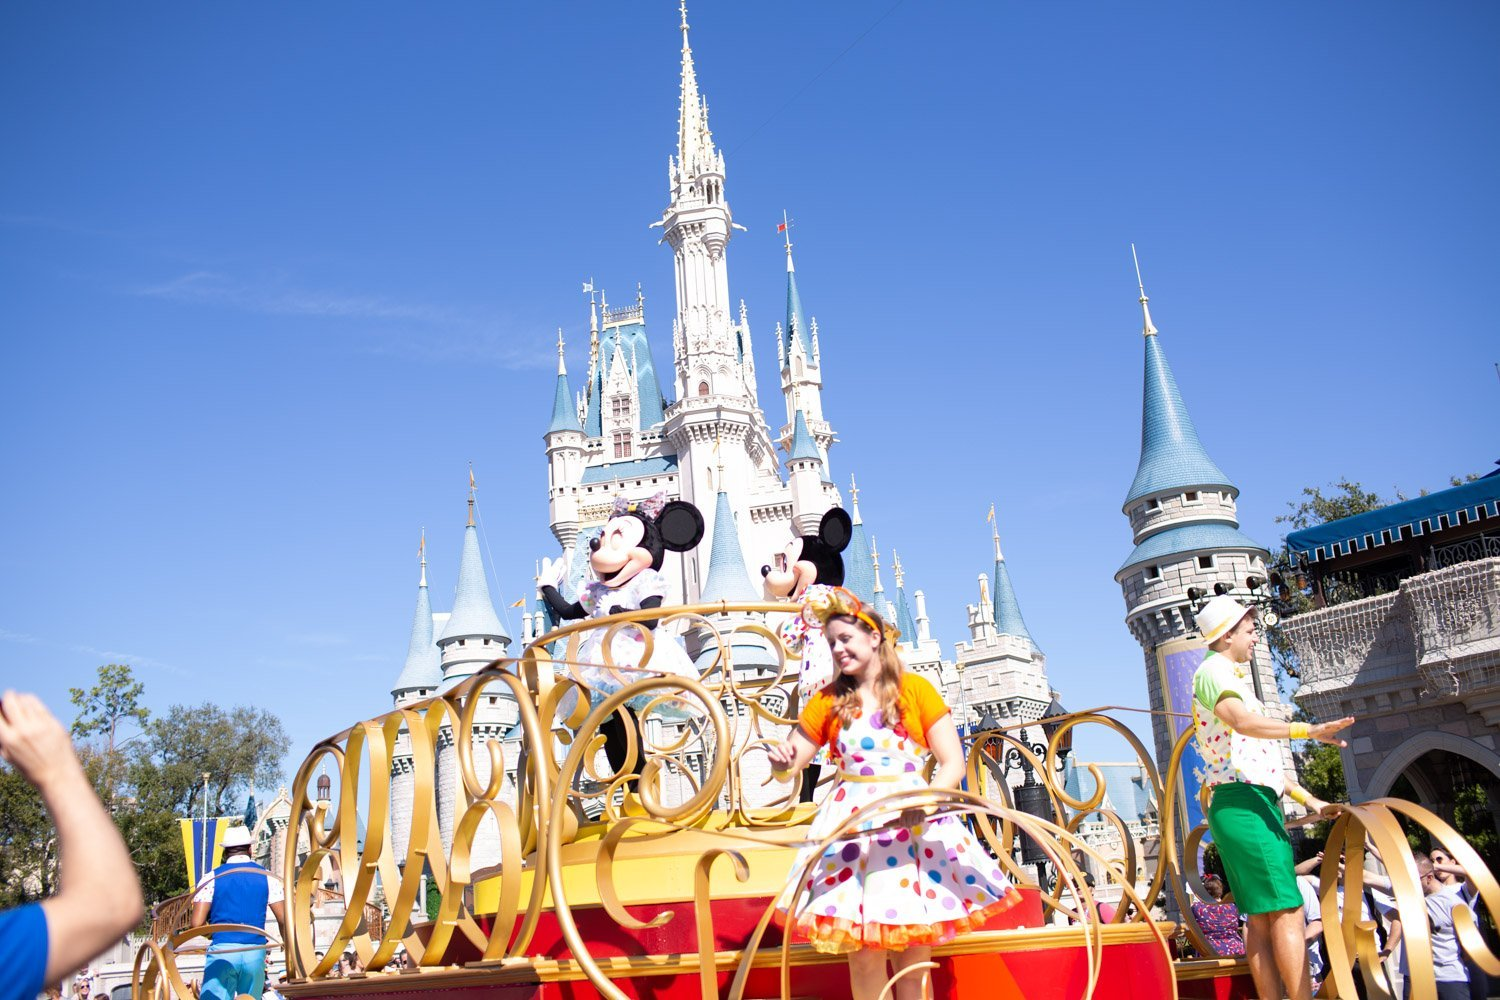 The BEST HACKS to Skipping Lines and Avoiding Crowds at Disney World (Some Free, Some Cost Money)